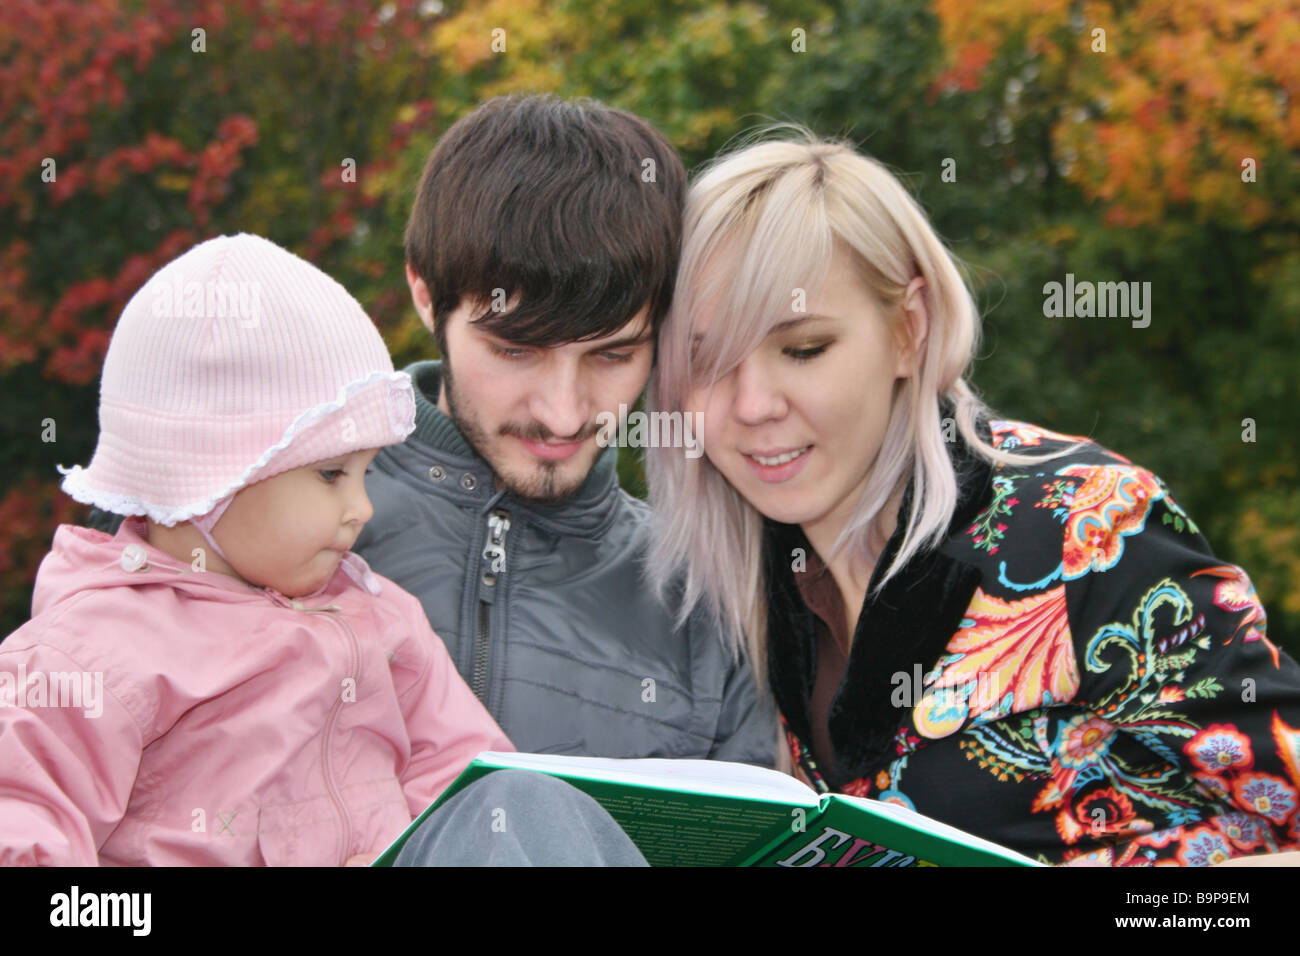 autumn family with baby read book stock photo 23232684 alamy